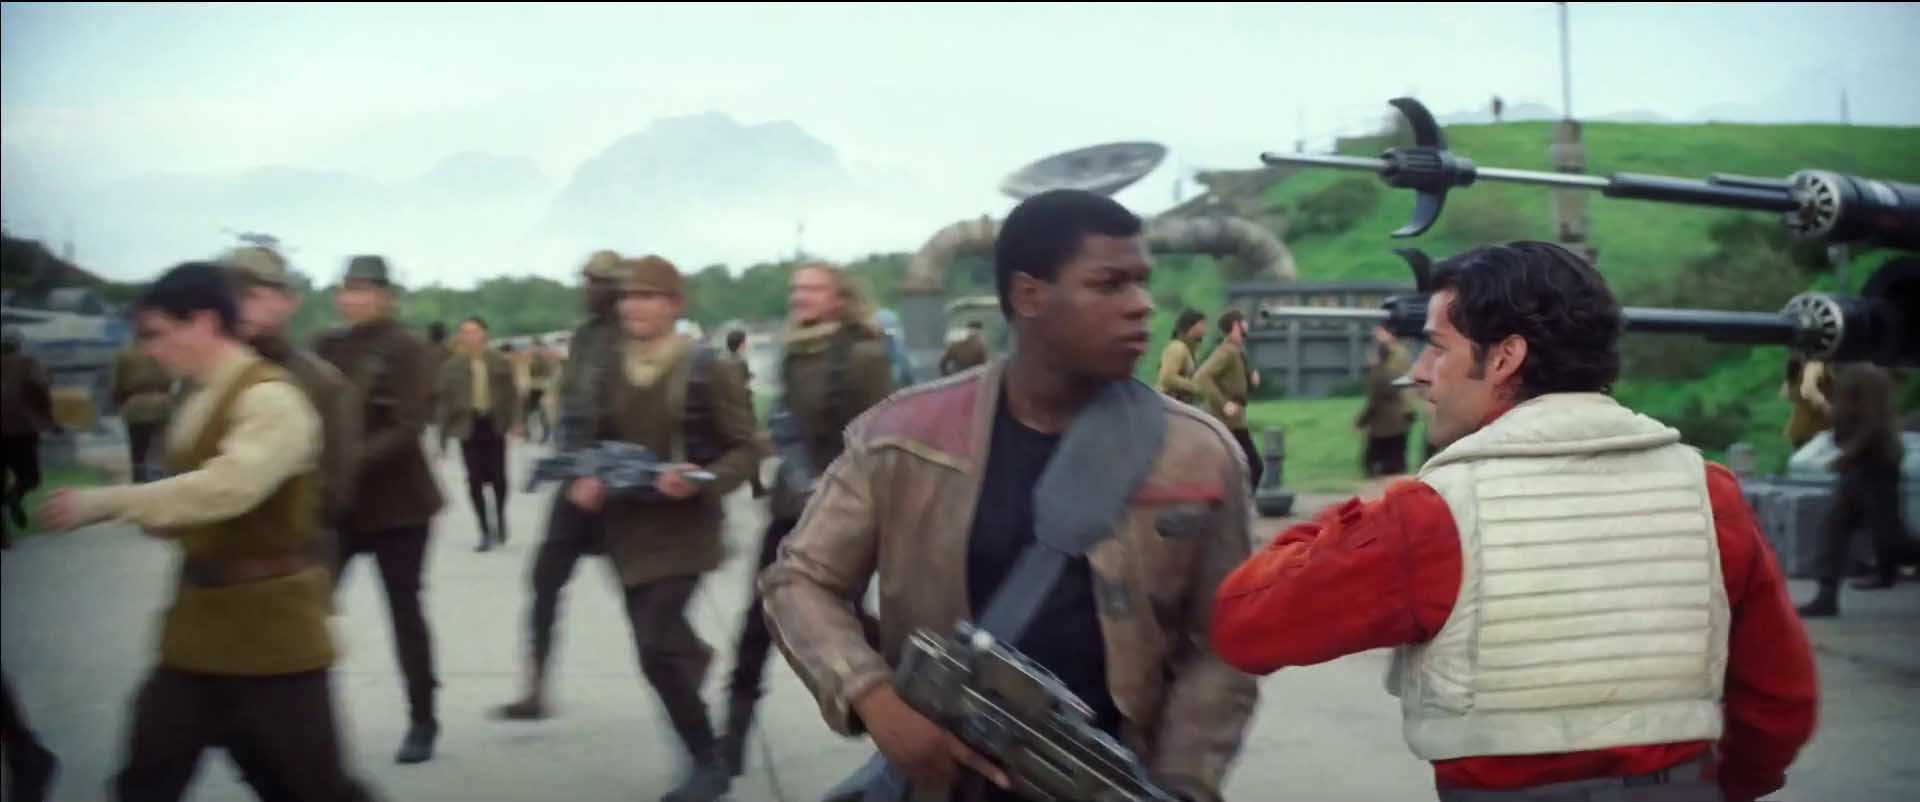 Star Wars The Force Awakens Finn and Poe